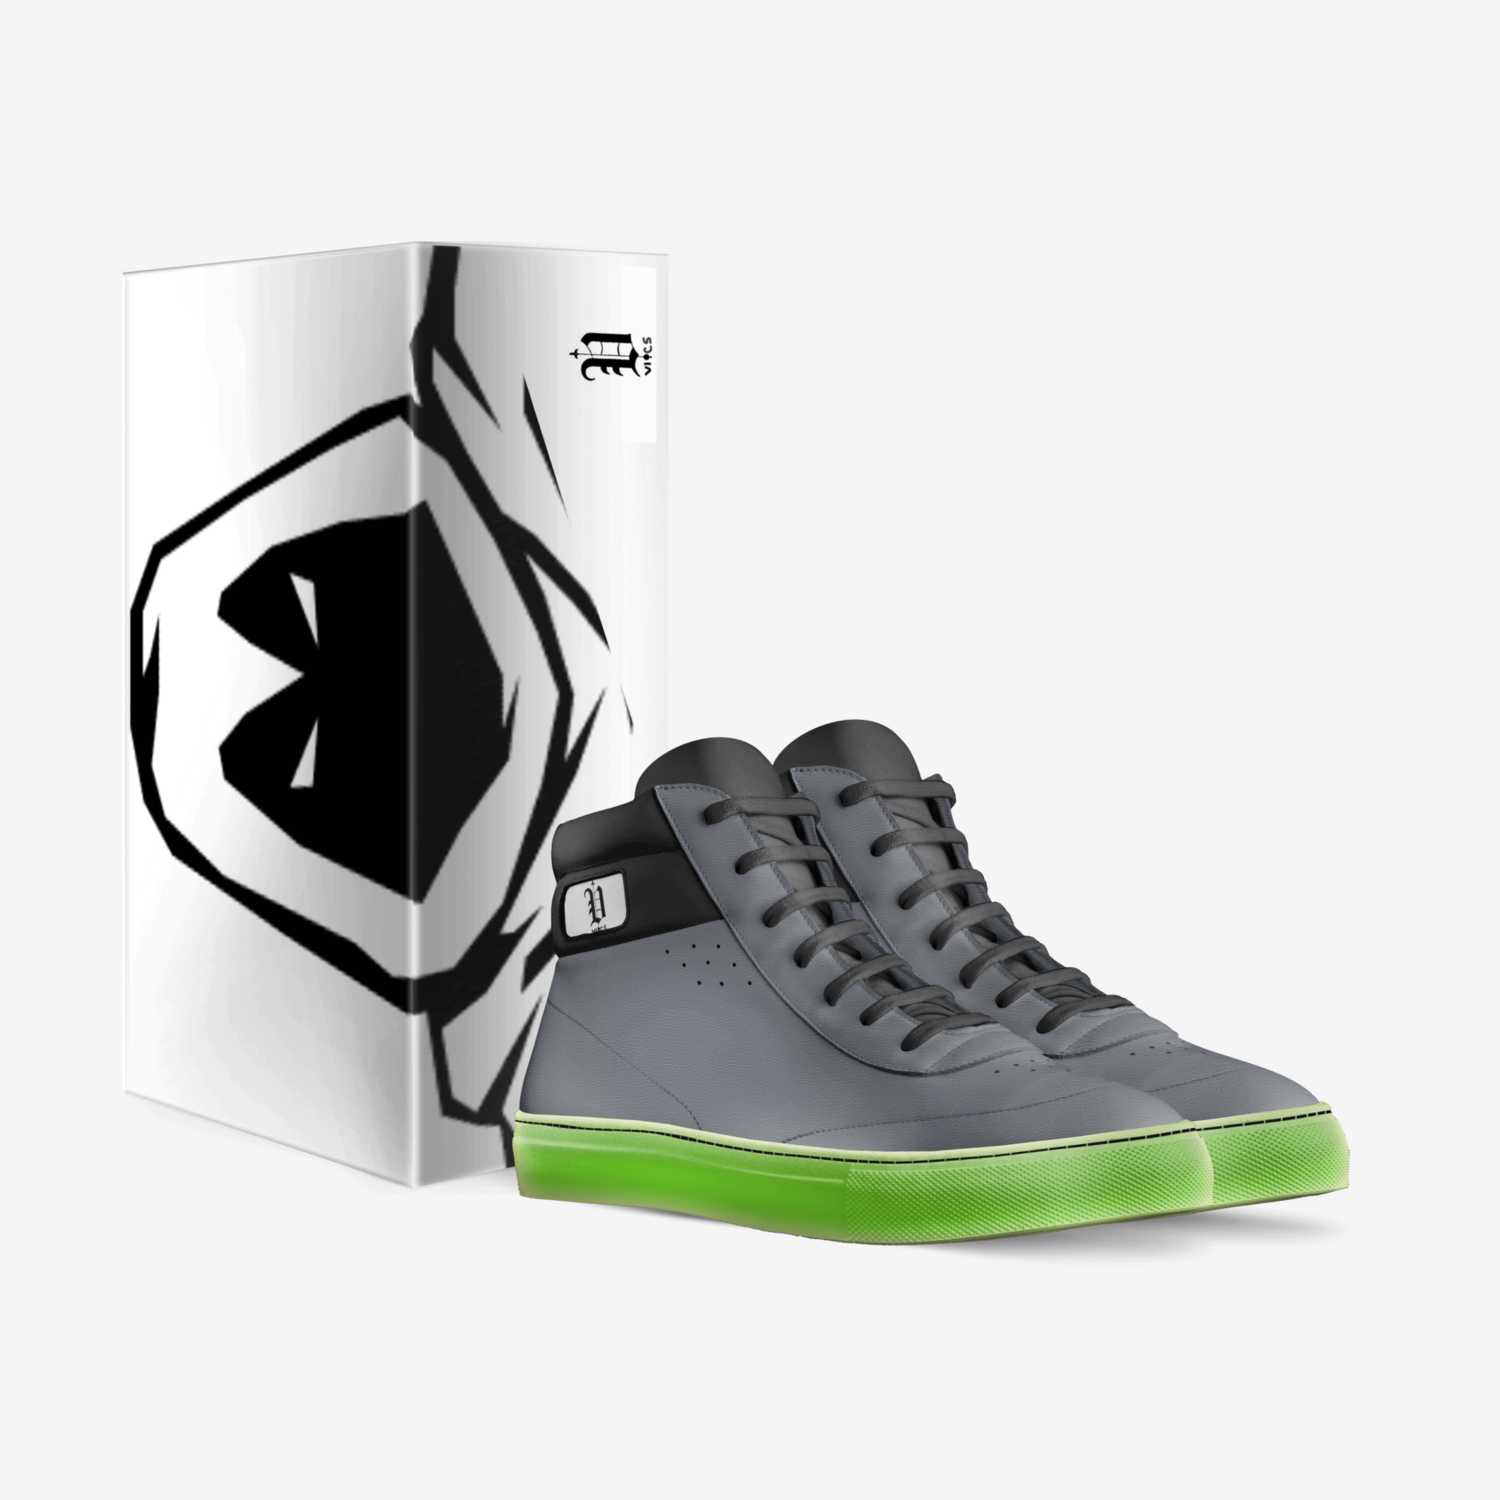 Vics phantom custom made in Italy shoes by Brayden Murphy | Box view